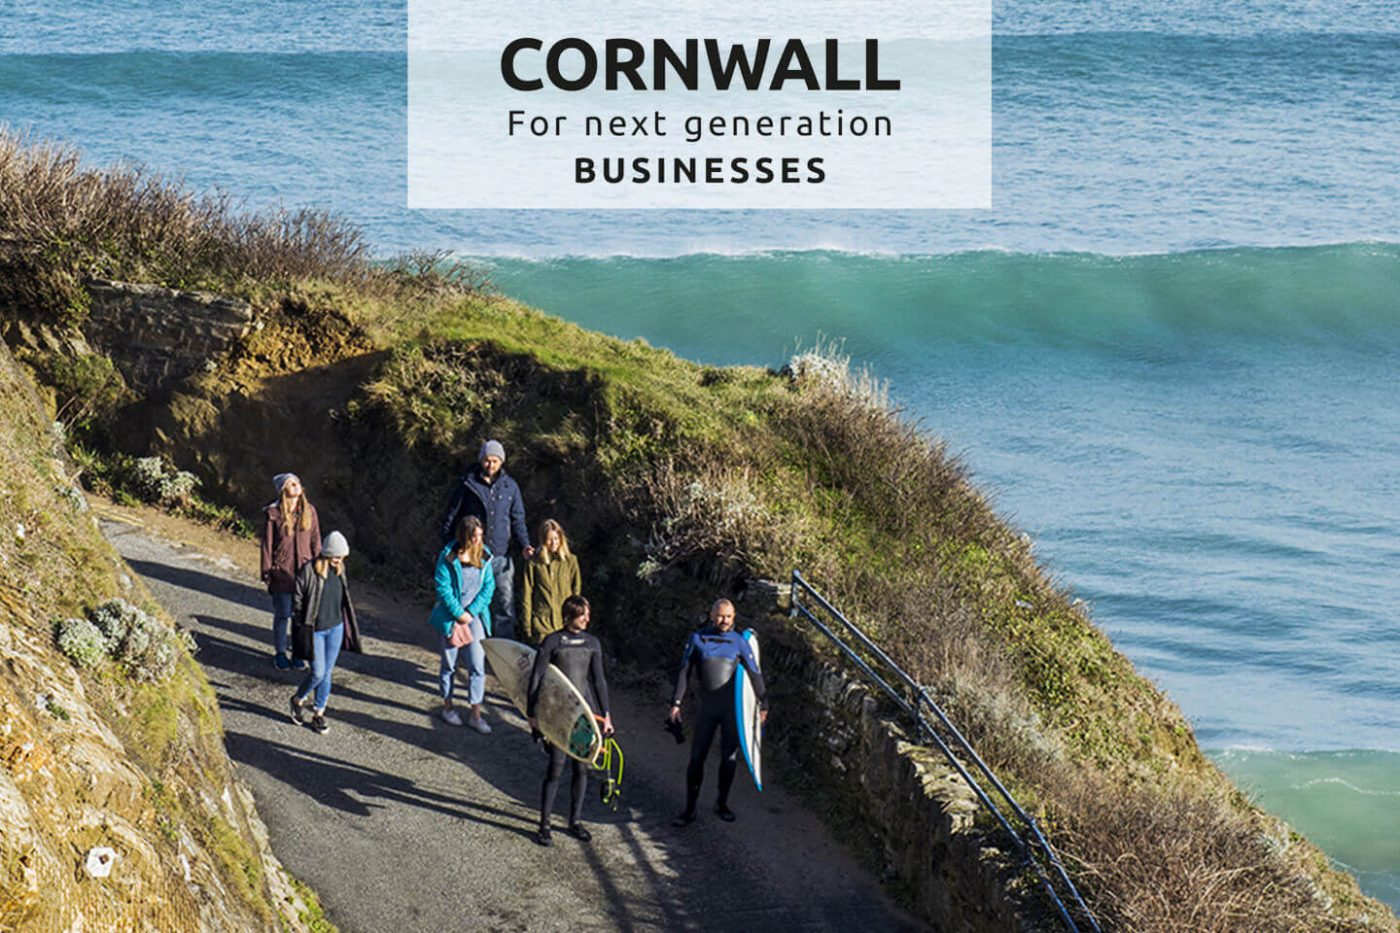 Cornwall: for the next generation